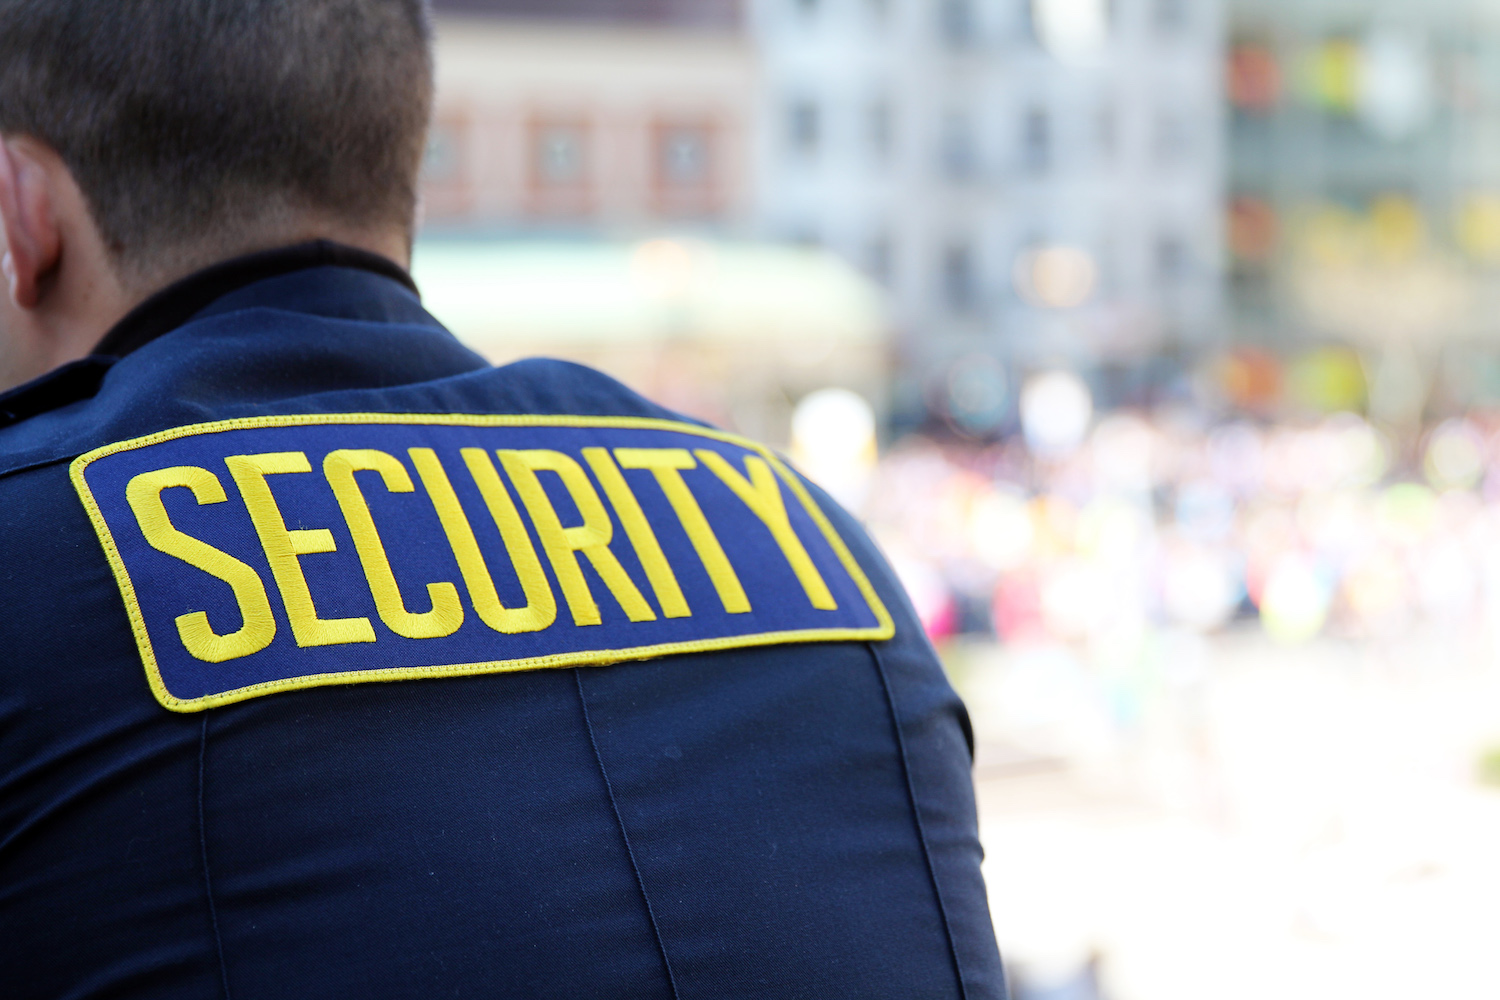 reluctant security guard 3 the security and accountability for every (safe) port act of 2006 (pl 1090-347) (6 usc 901 et seq) made adjustments to the mtsa and codified authorities for the.